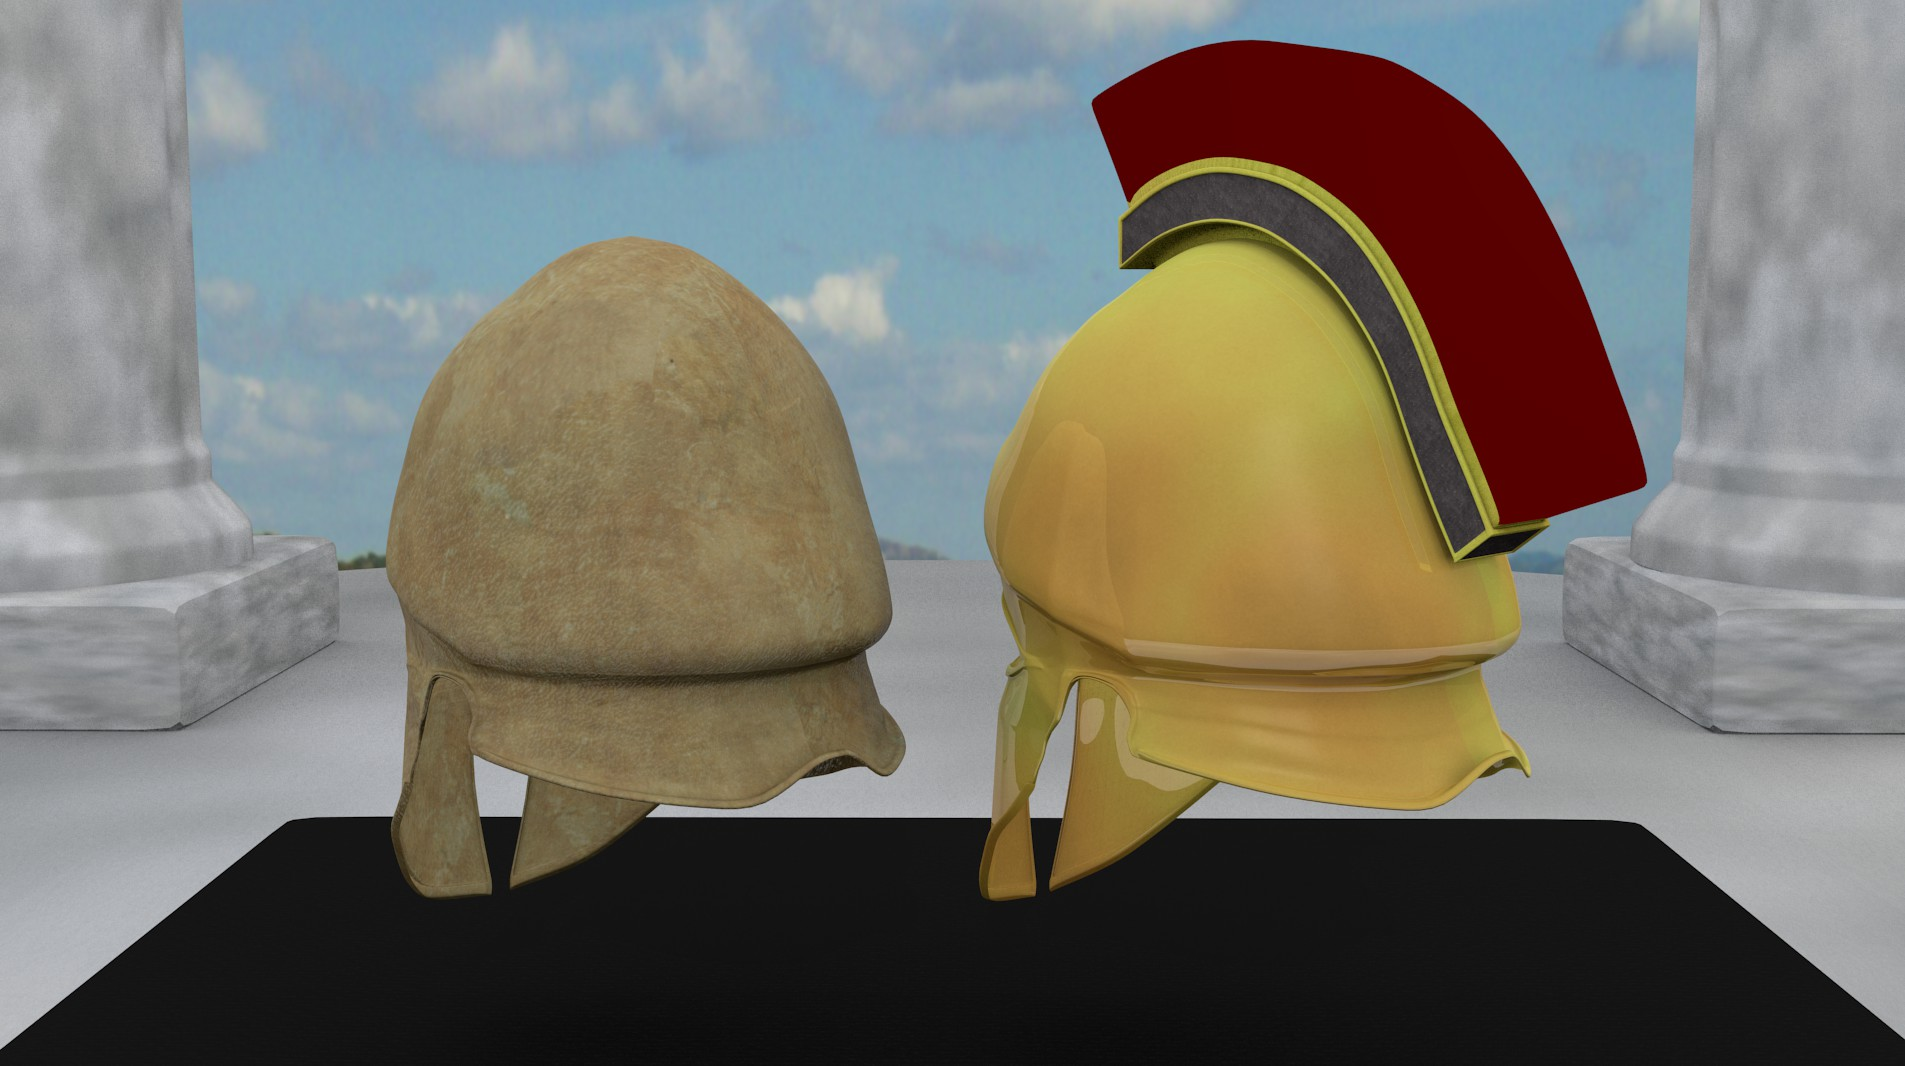 ancient greek corinthian helmets 3d model fbx blend dae obj 118117